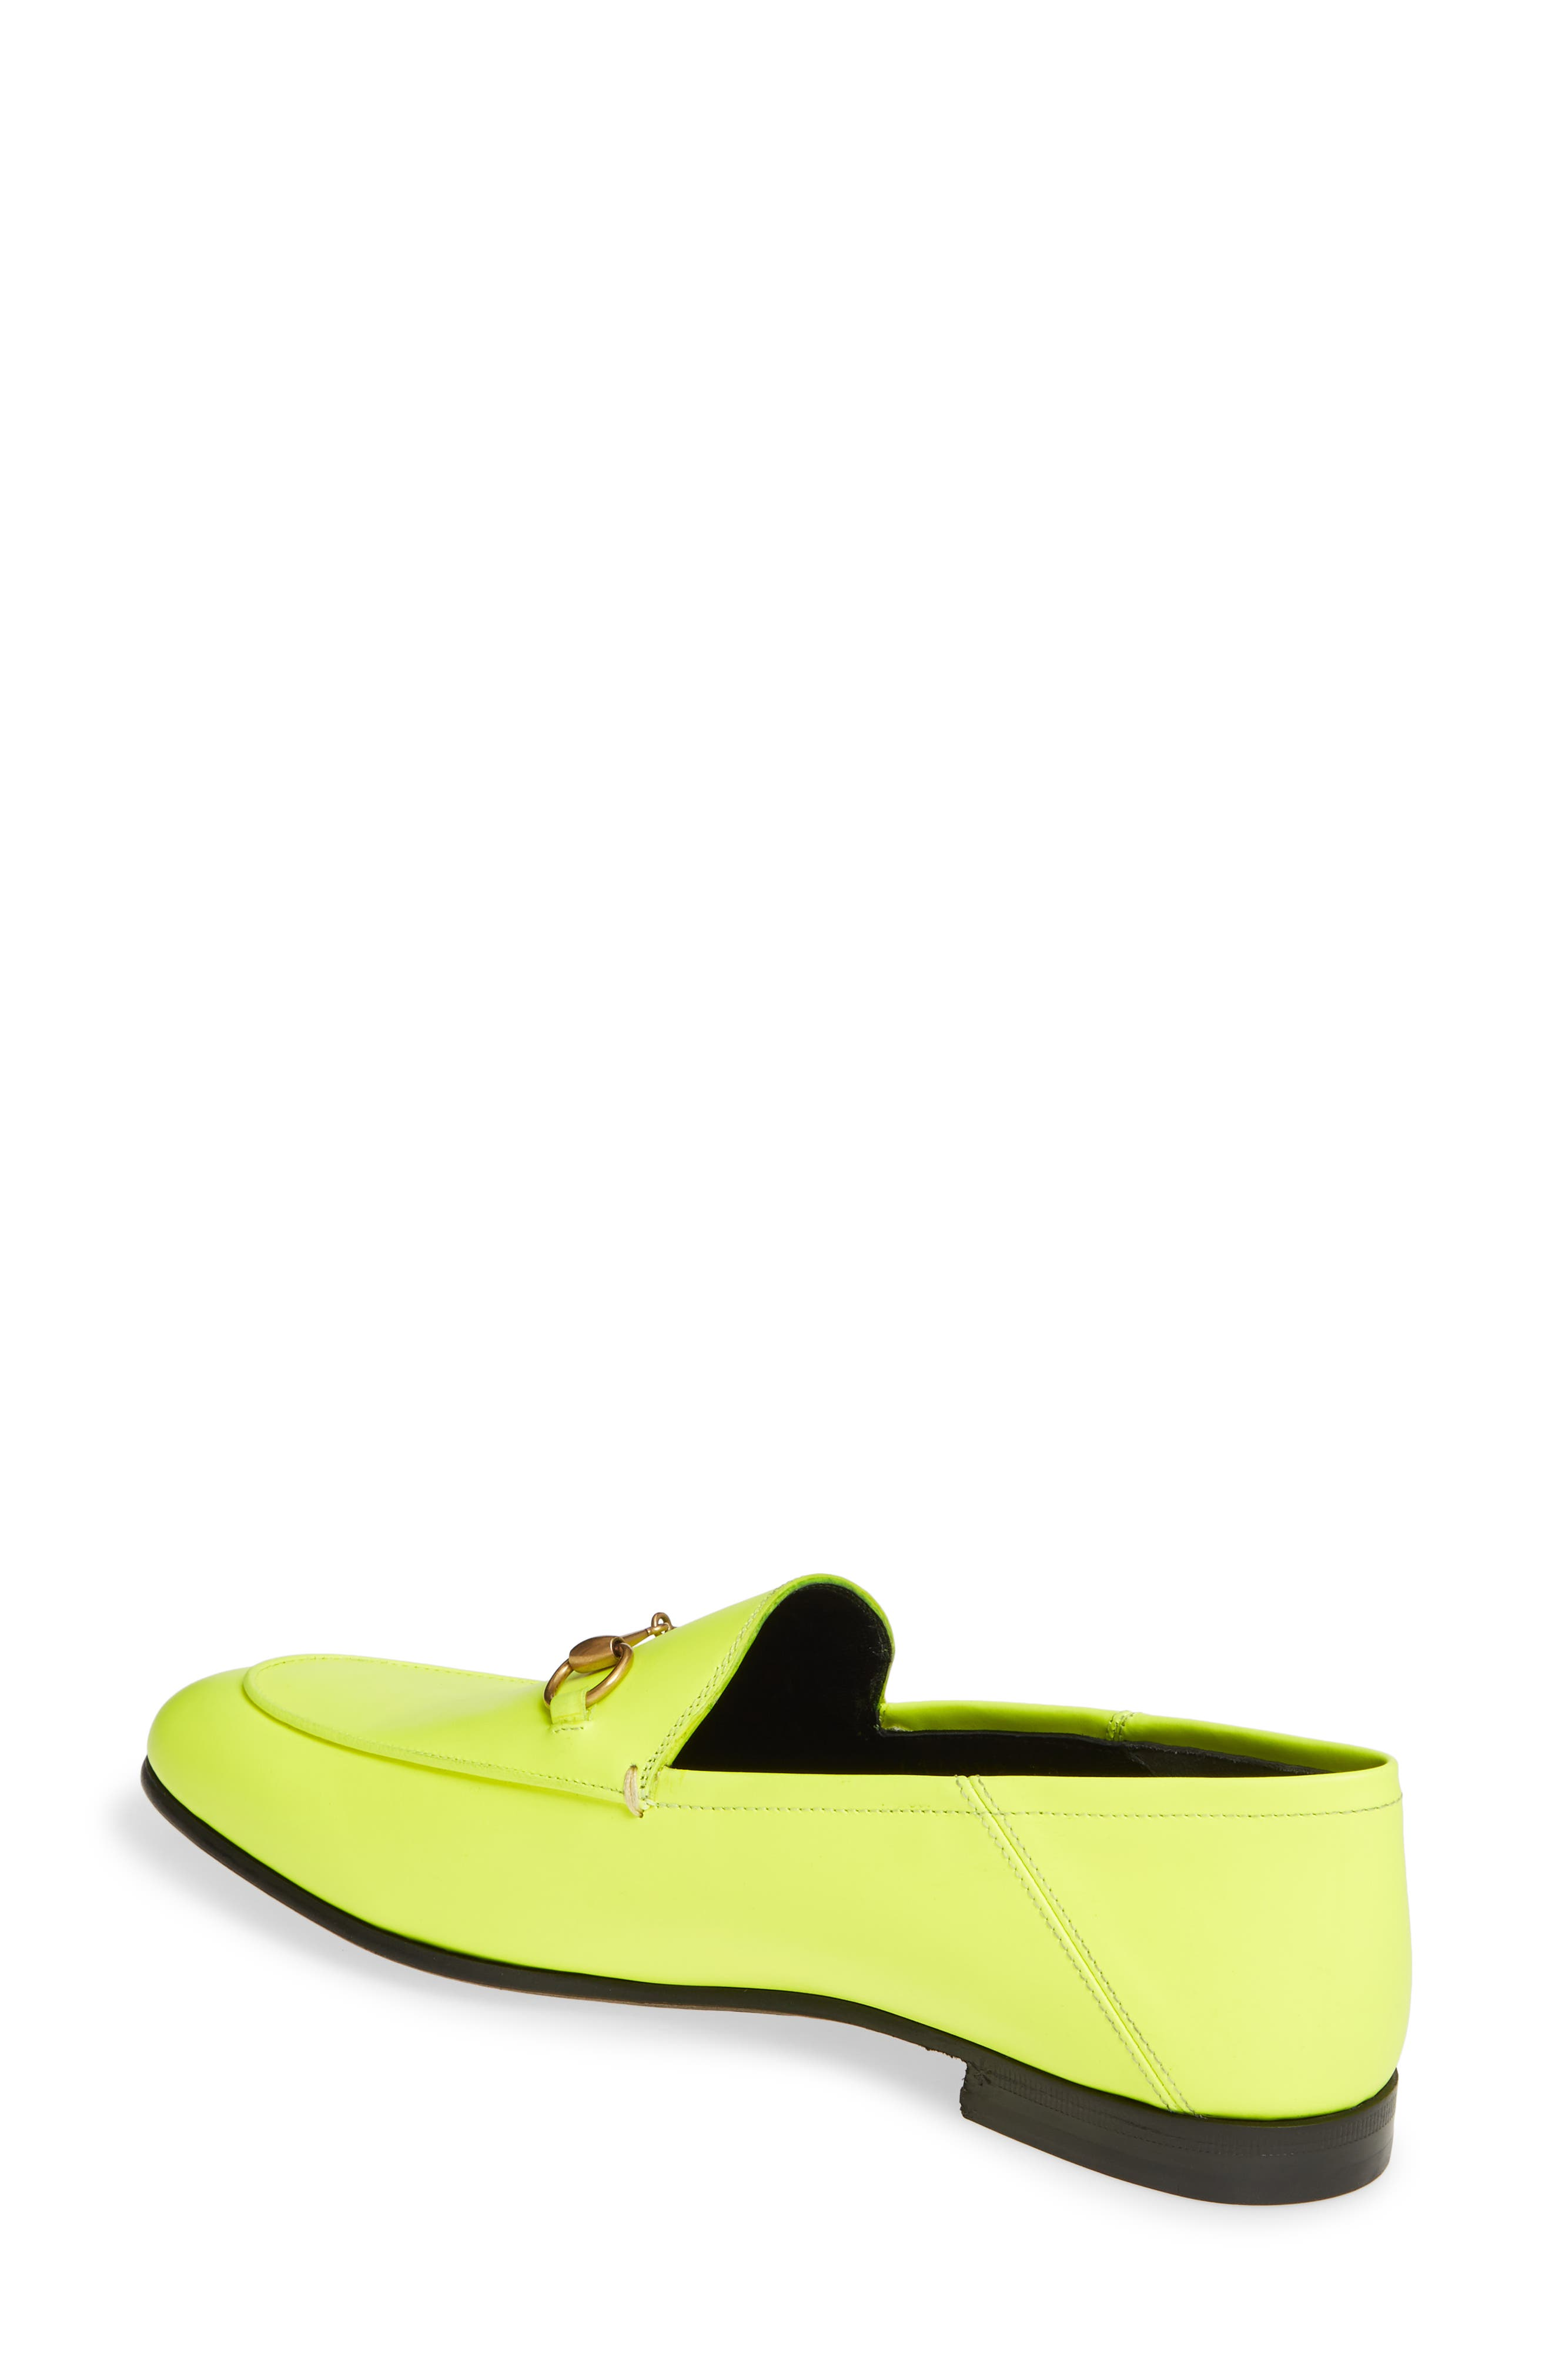 GUCCI, Brixton Convertible Loafer, Alternate thumbnail 2, color, YELLOW FLUO LEATHER